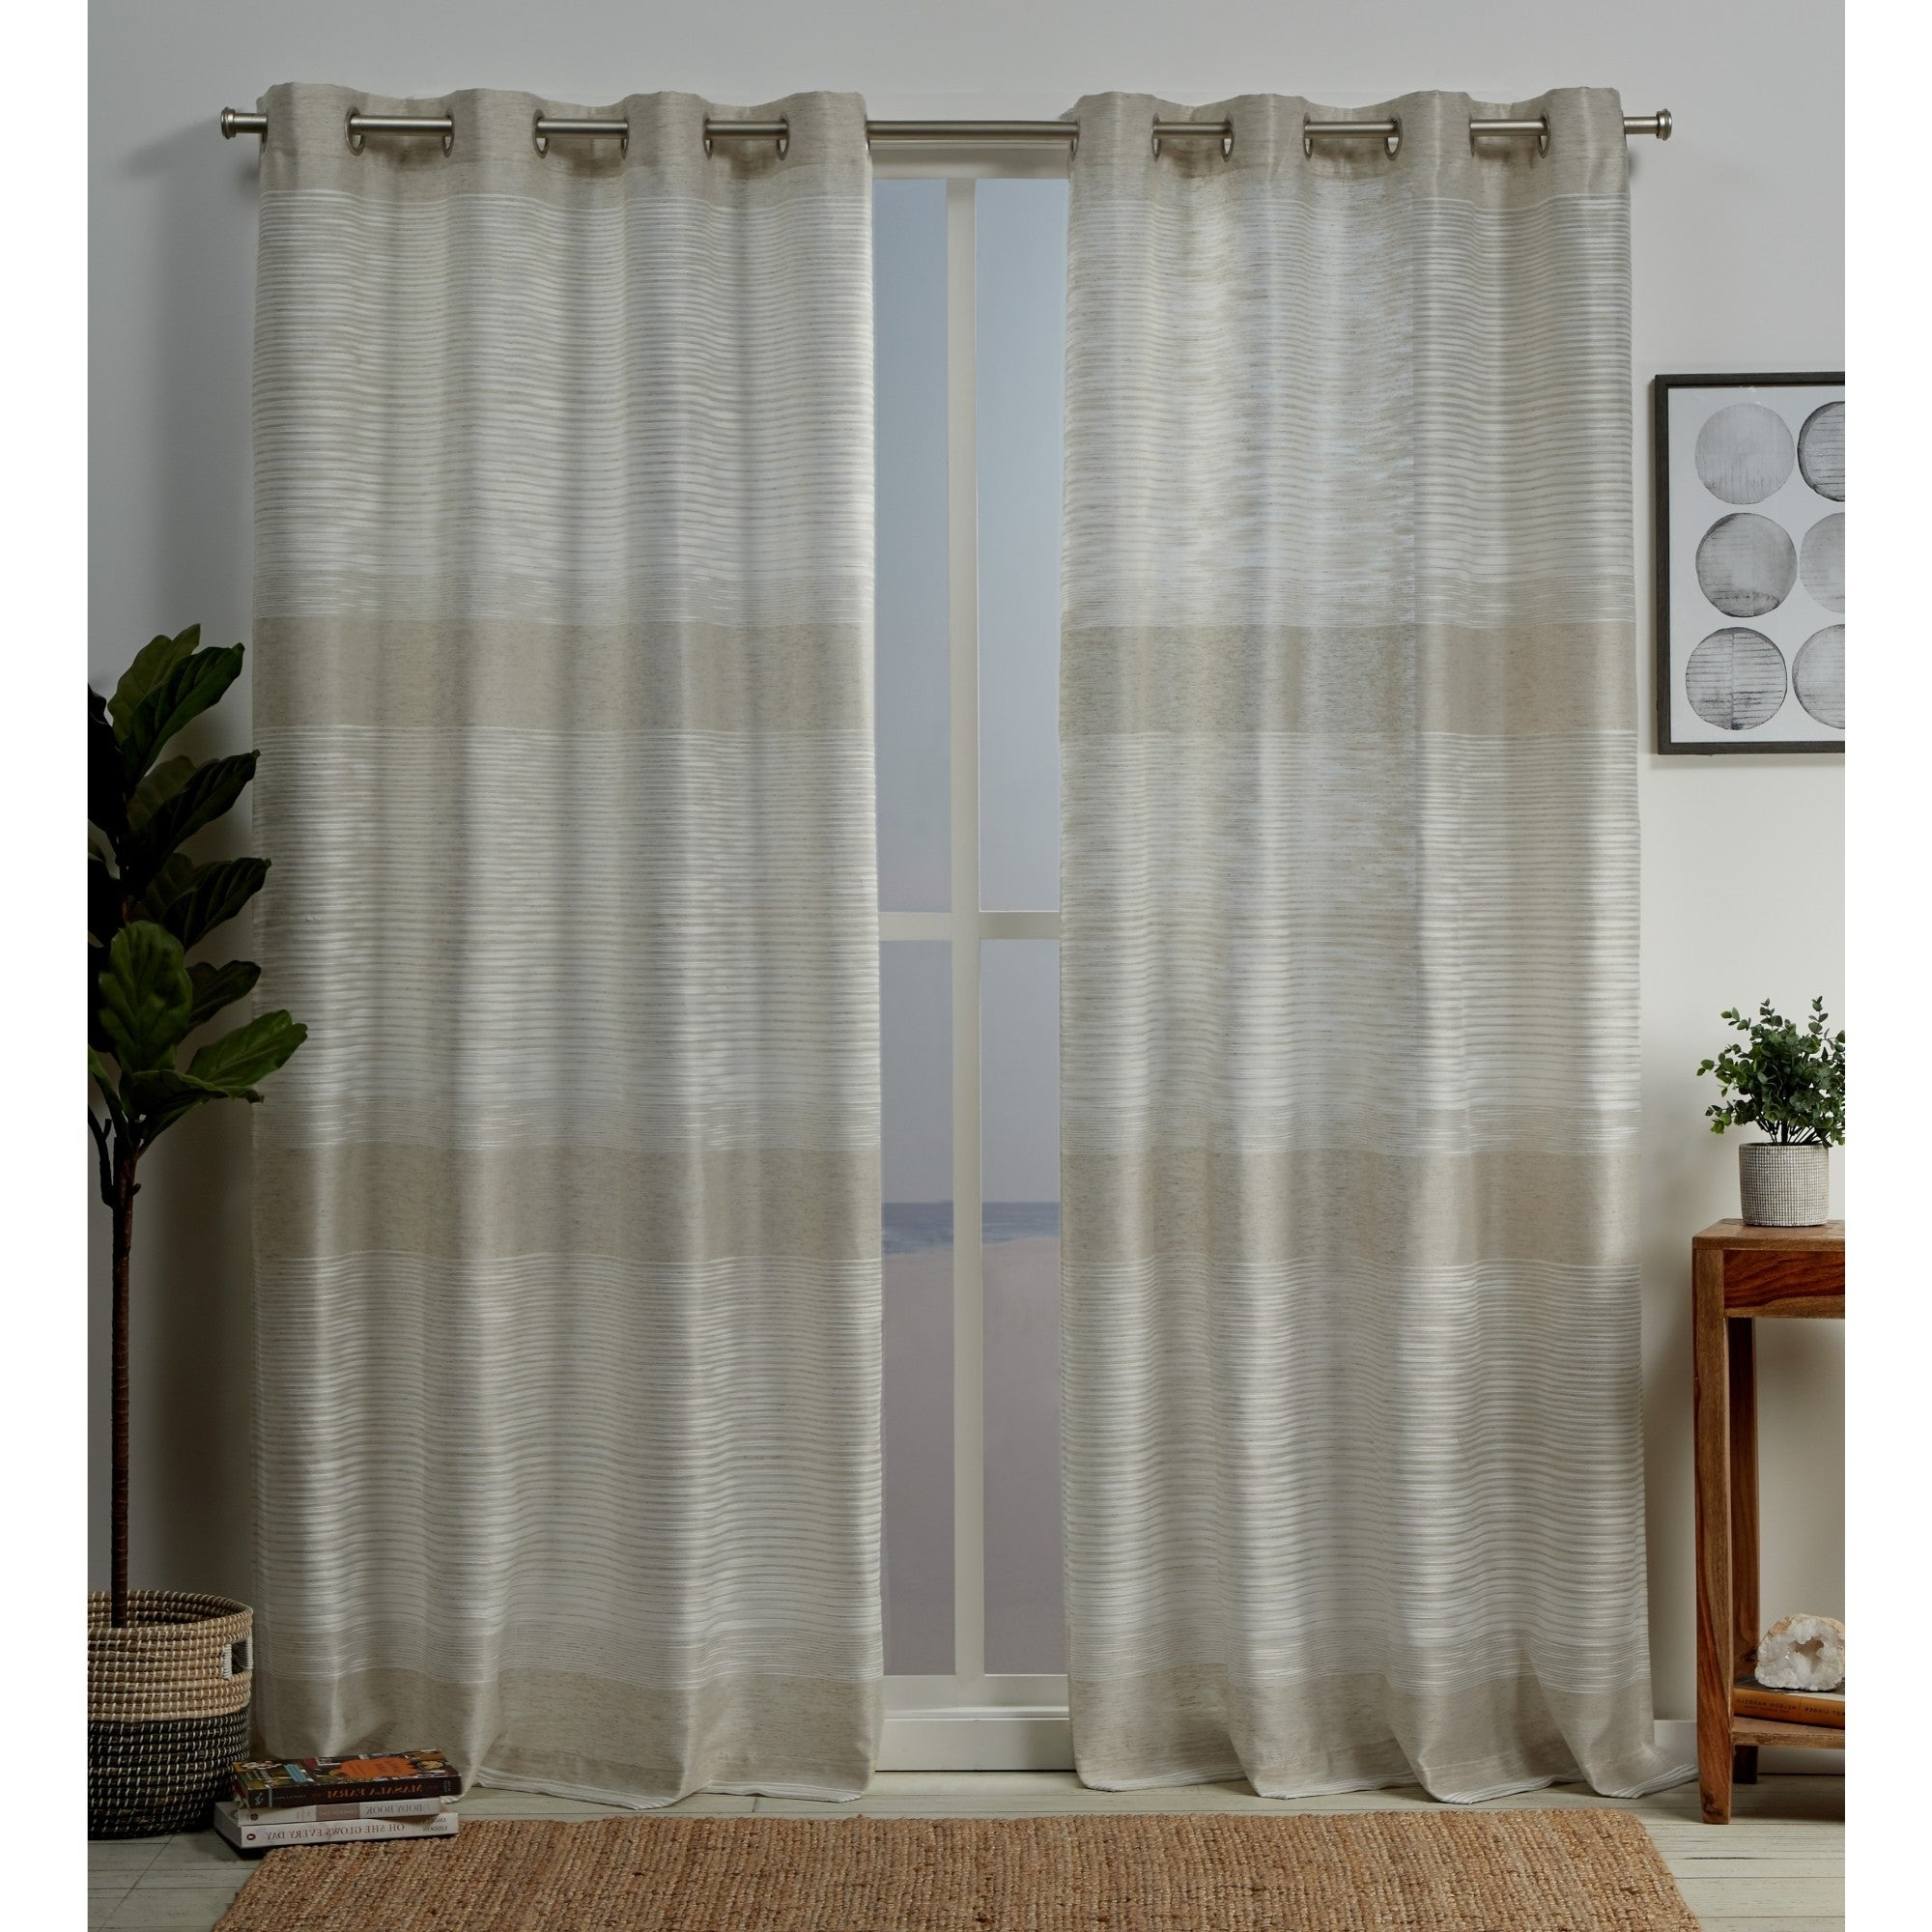 2020 Copper Grove Panagyurishte Striped Grommet Top Curtain Panel Pair Throughout Ombre Stripe Yarn Dyed Cotton Window Curtain Panel Pairs (View 1 of 20)